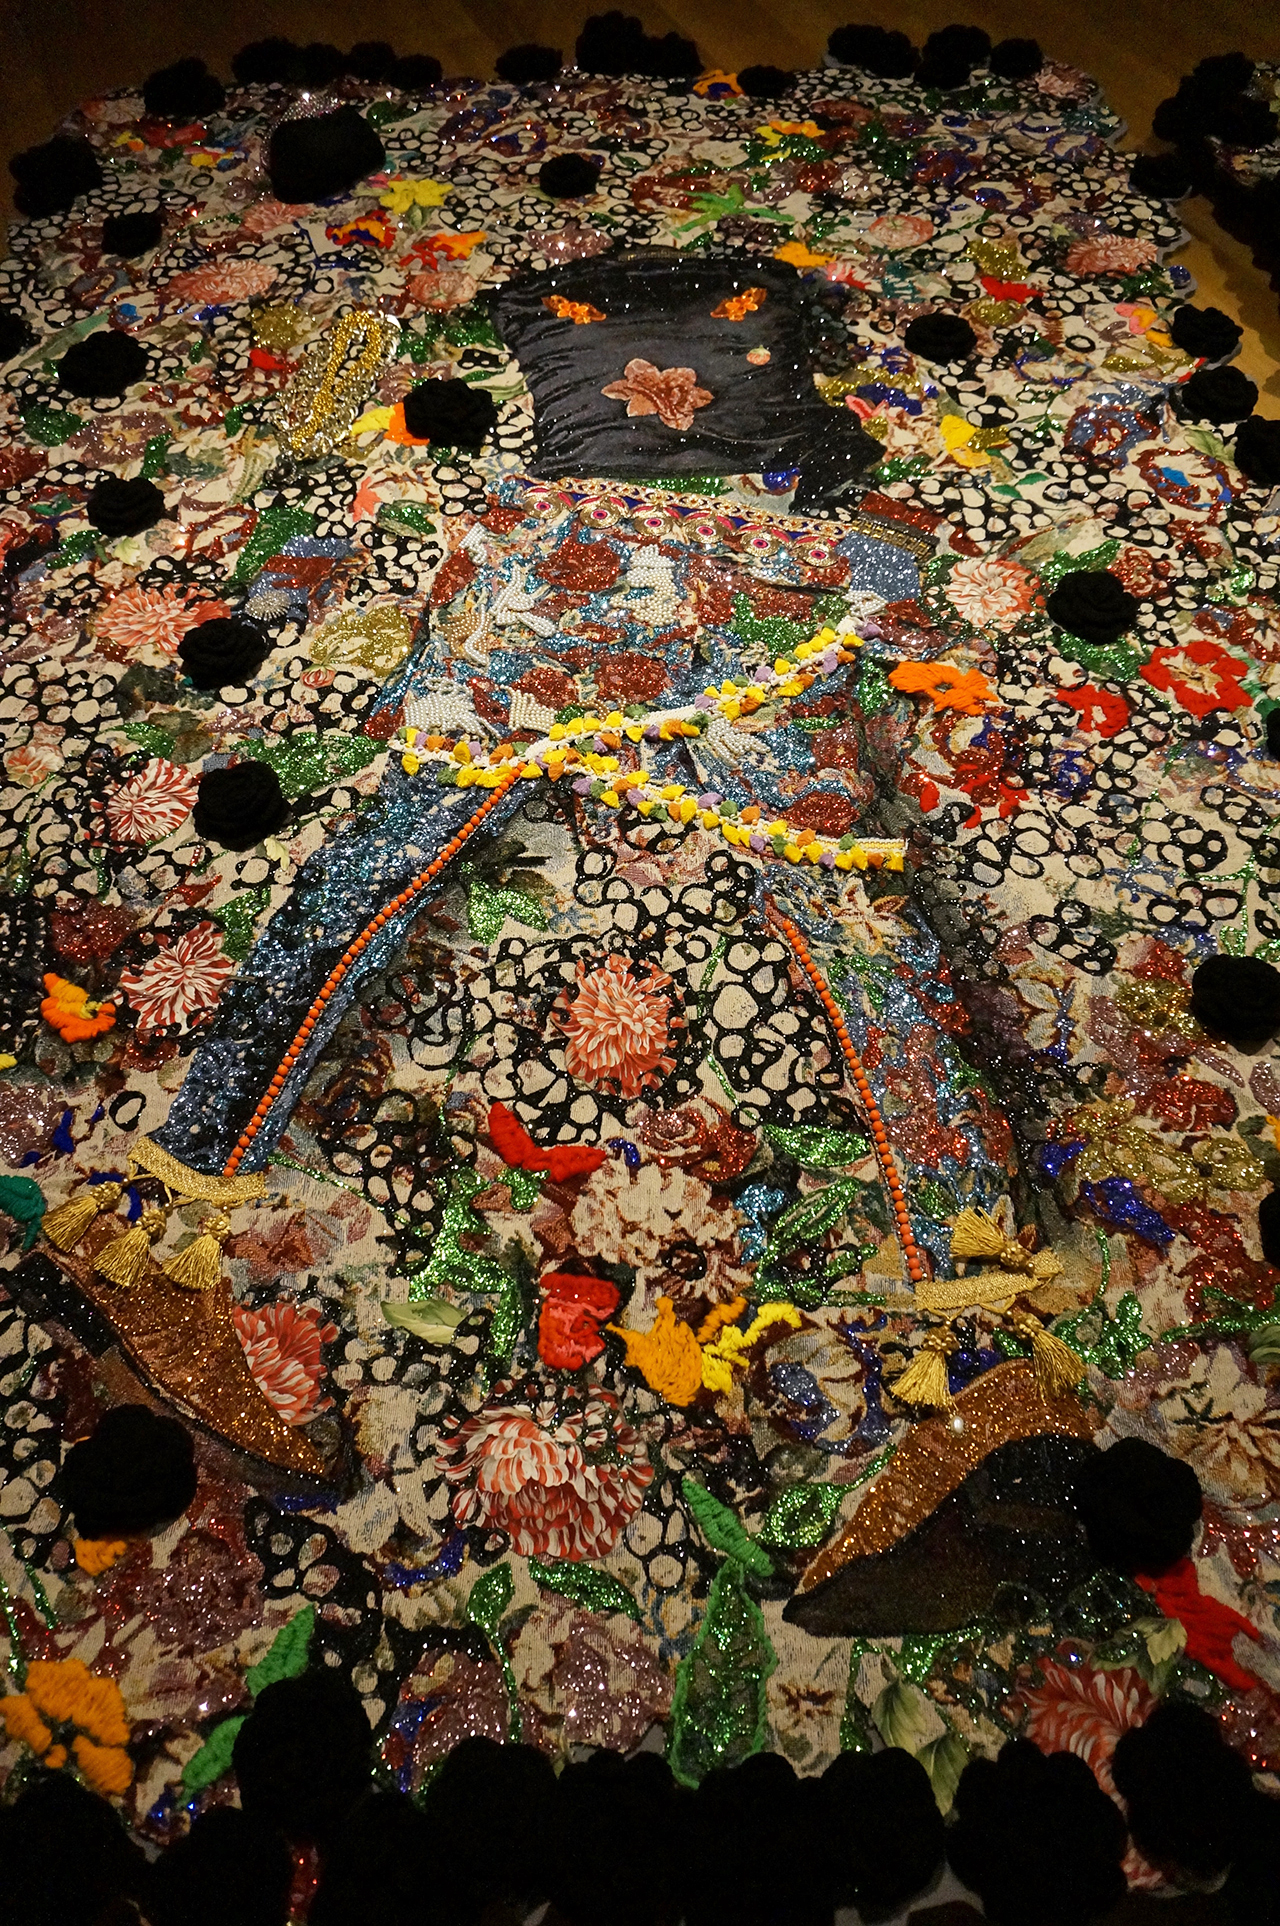 """Detail of Ebony G. Patterson, """"wilted rosez"""" (2014), mixed-media jacquard tapestry, with embroidery, glitter, caftan, costume jewelry, glass, eighty black crocheted flowers, embellishments"""